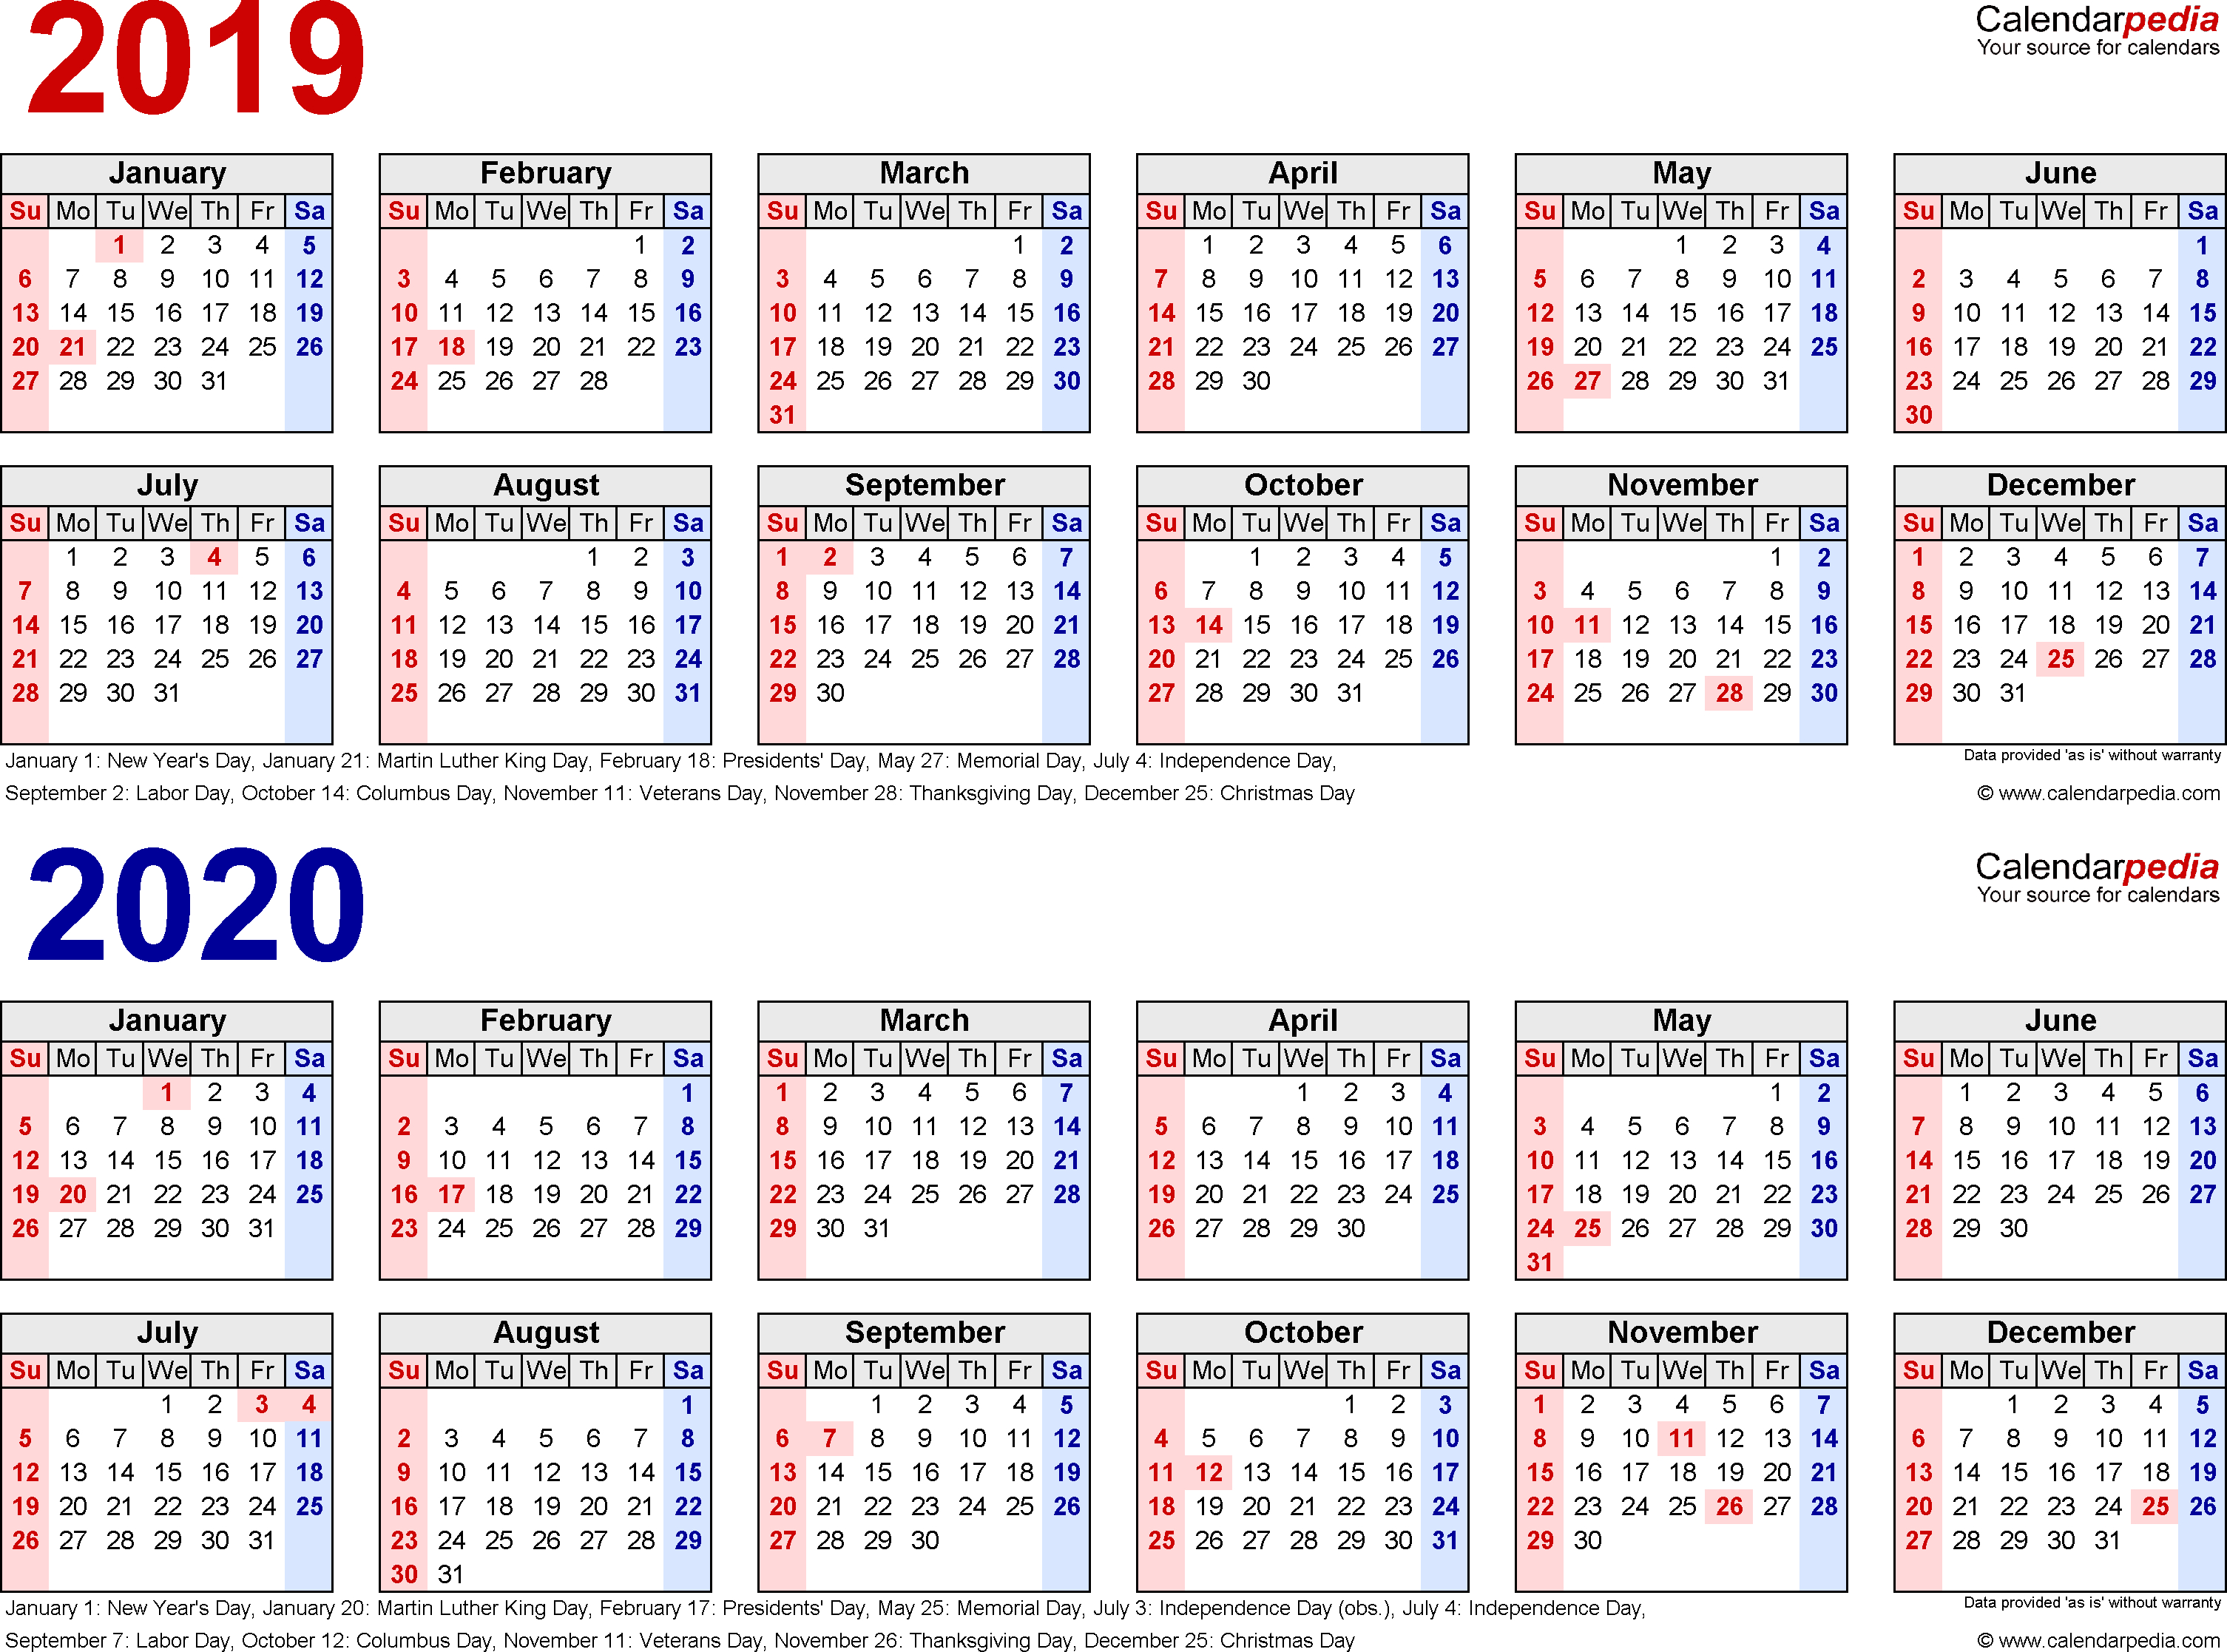 2019-2020 Calendar - Free Printable Two-Year Pdf Calendars in 1 Page Calendar 2019-2020 With Major Holidays